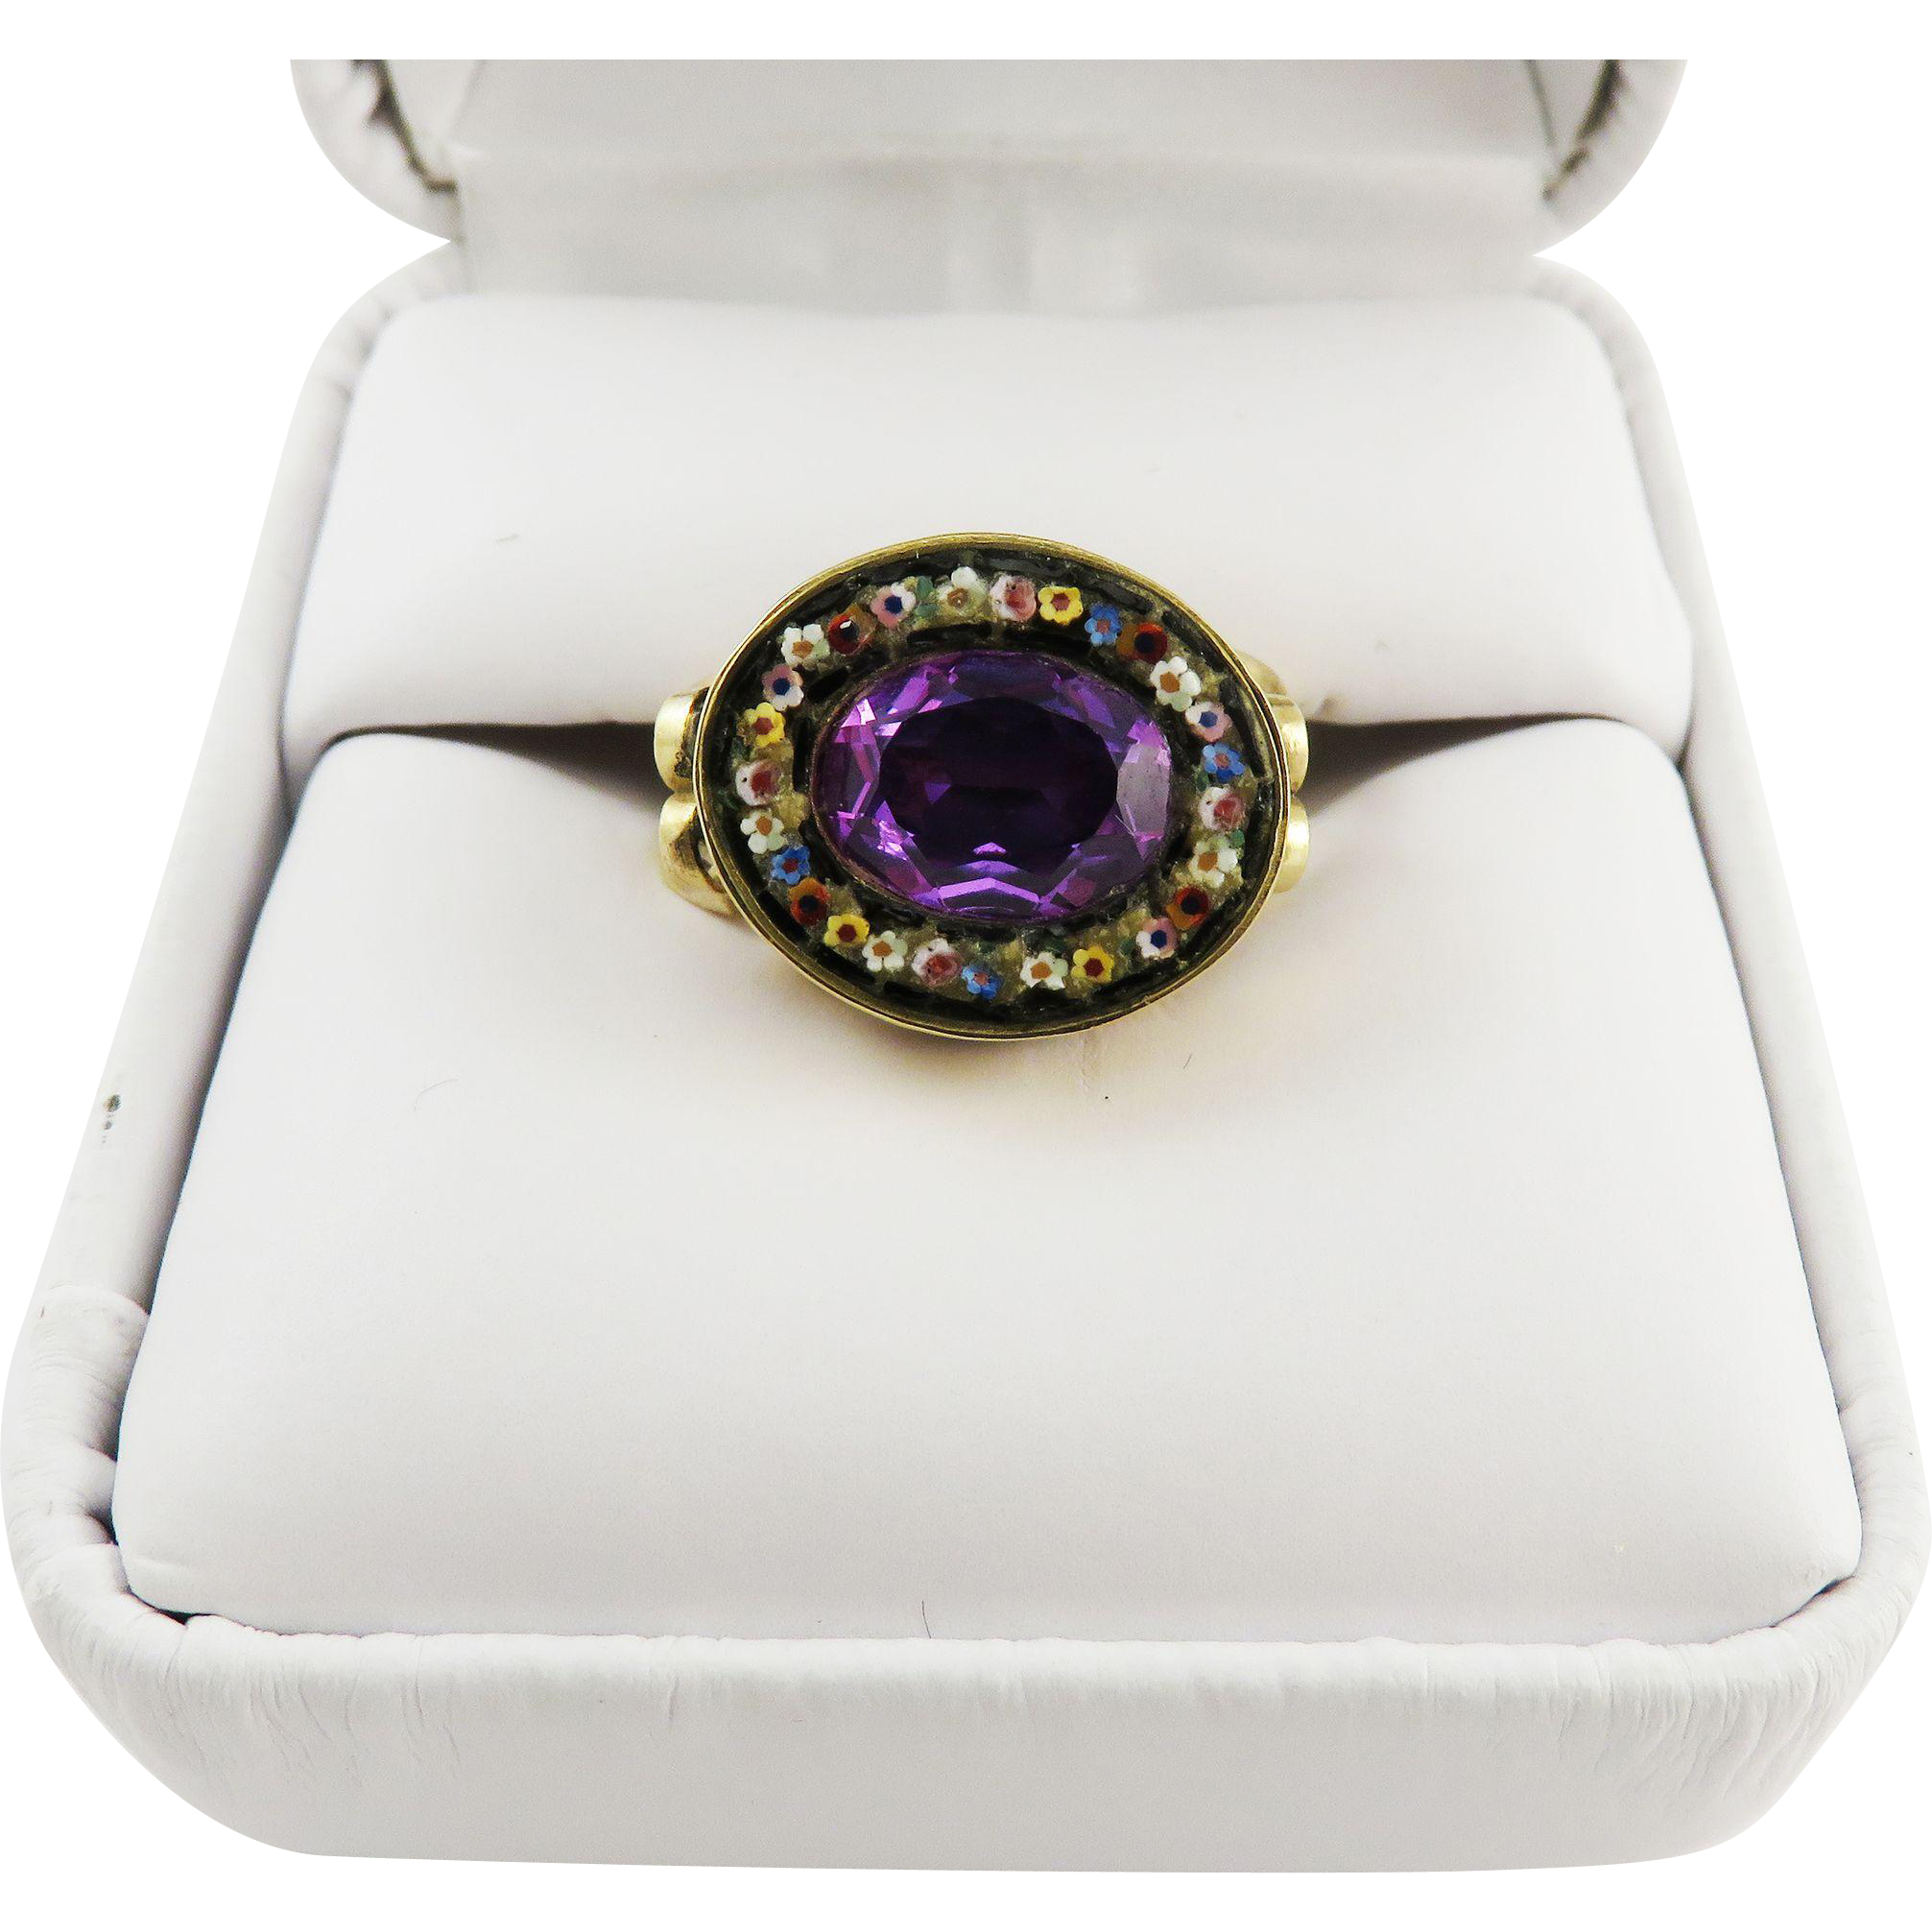 GLORIOUS Regency 2.61 Ct. Unheated Violet Sapphire/Micromosaic/12k Ring, c.1810!